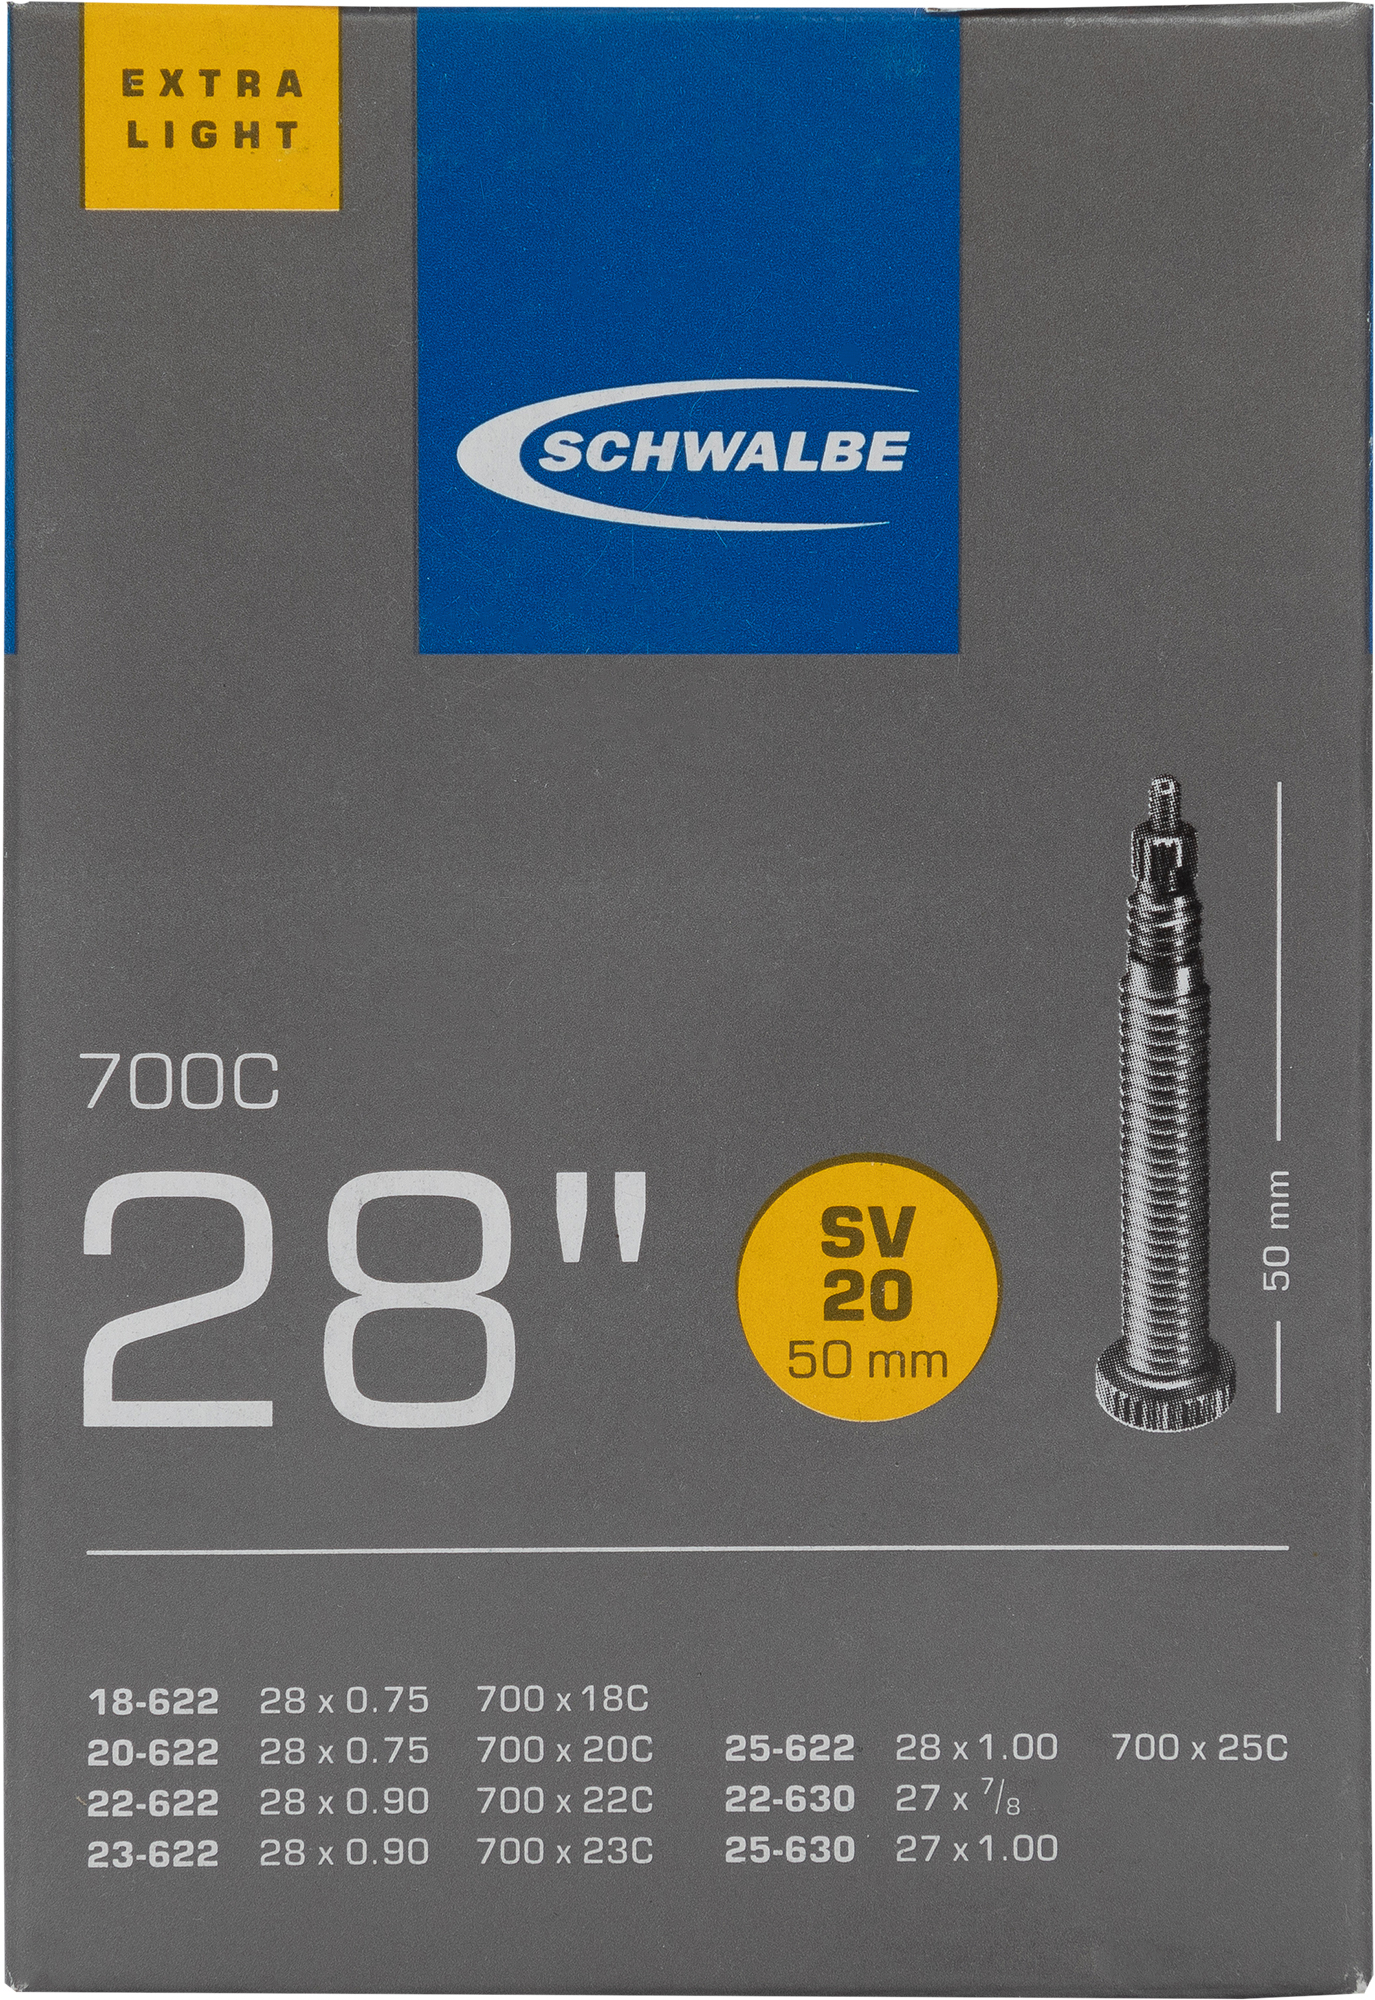 Schwalbe Камера SV20 EXTRA LIGHT 50mm 28